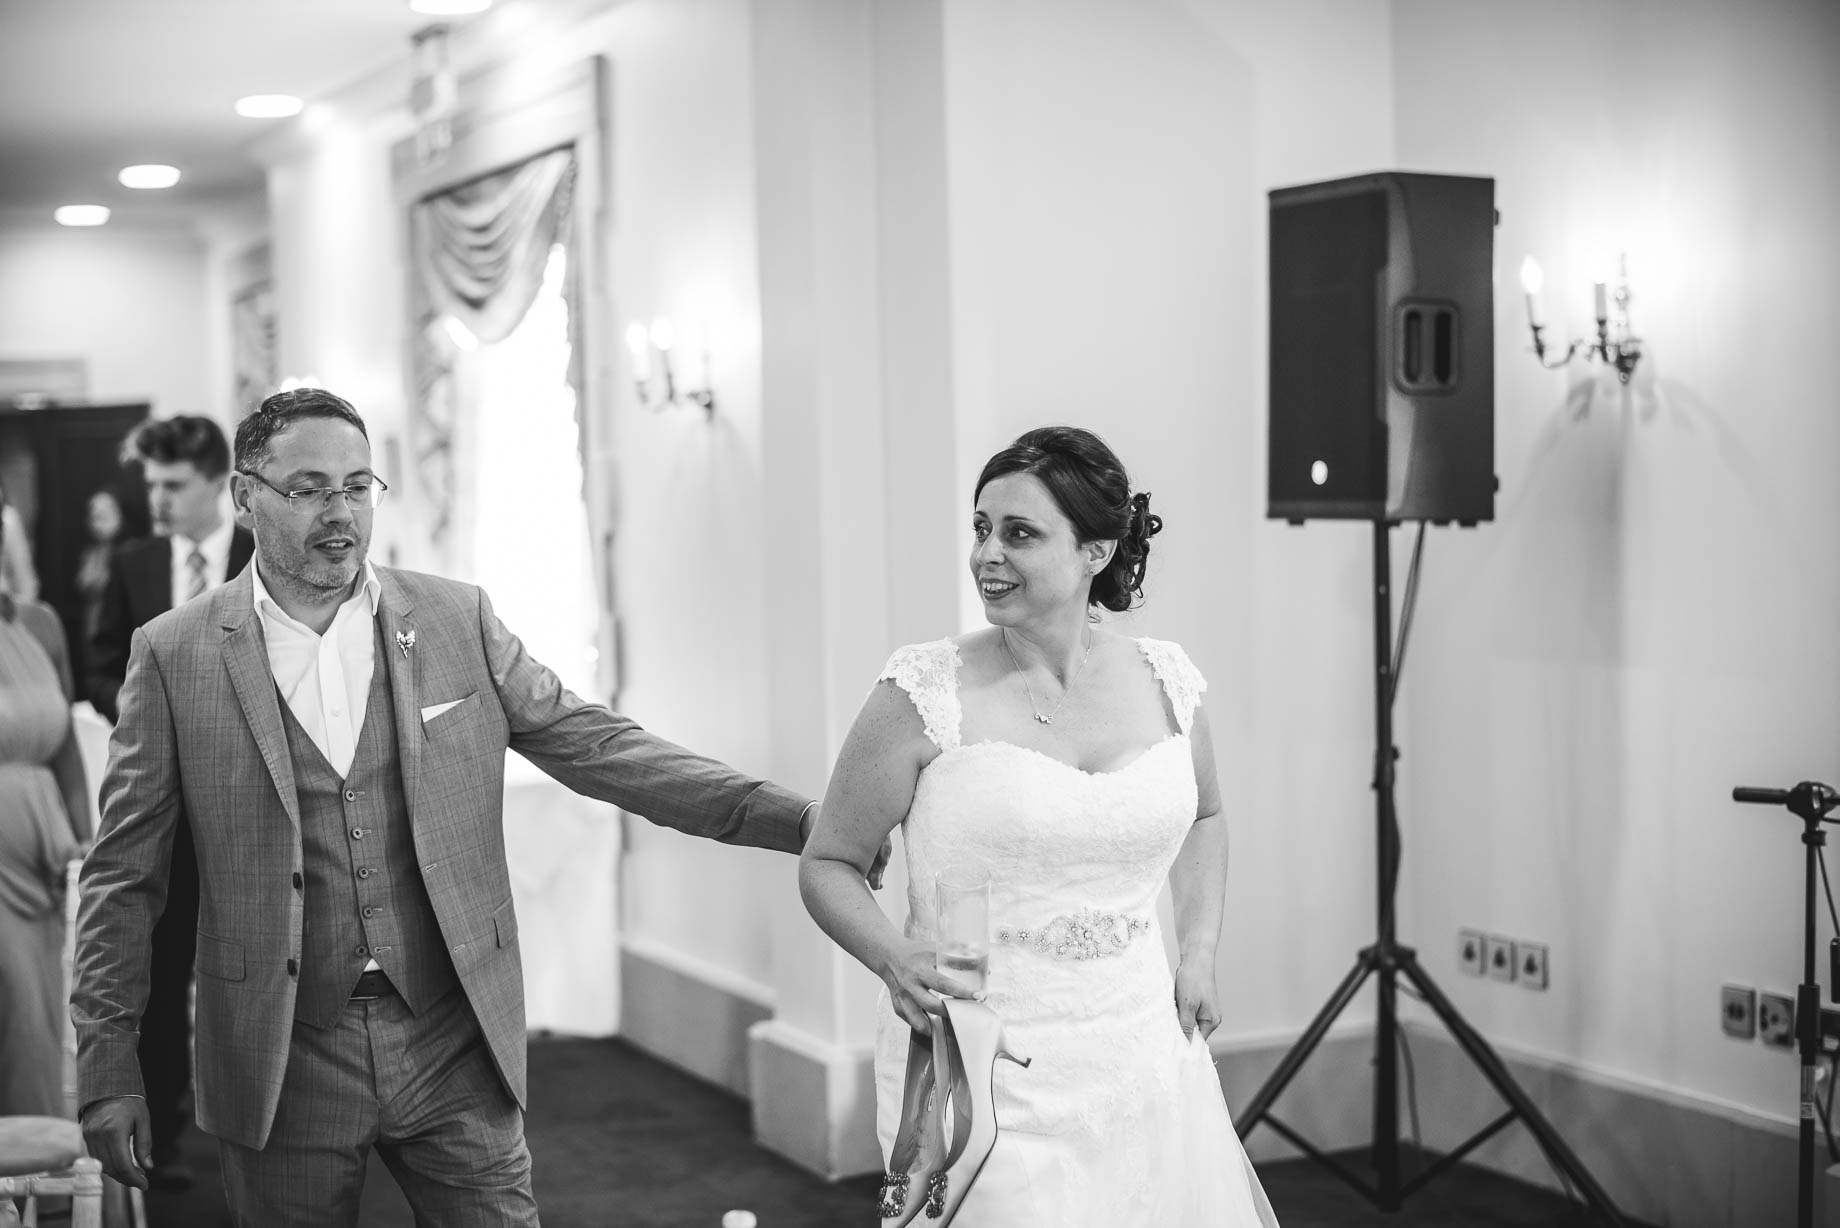 Luton Hoo wedding photography by Guy Collier Photography - Lauren and Gem (128 of 178)